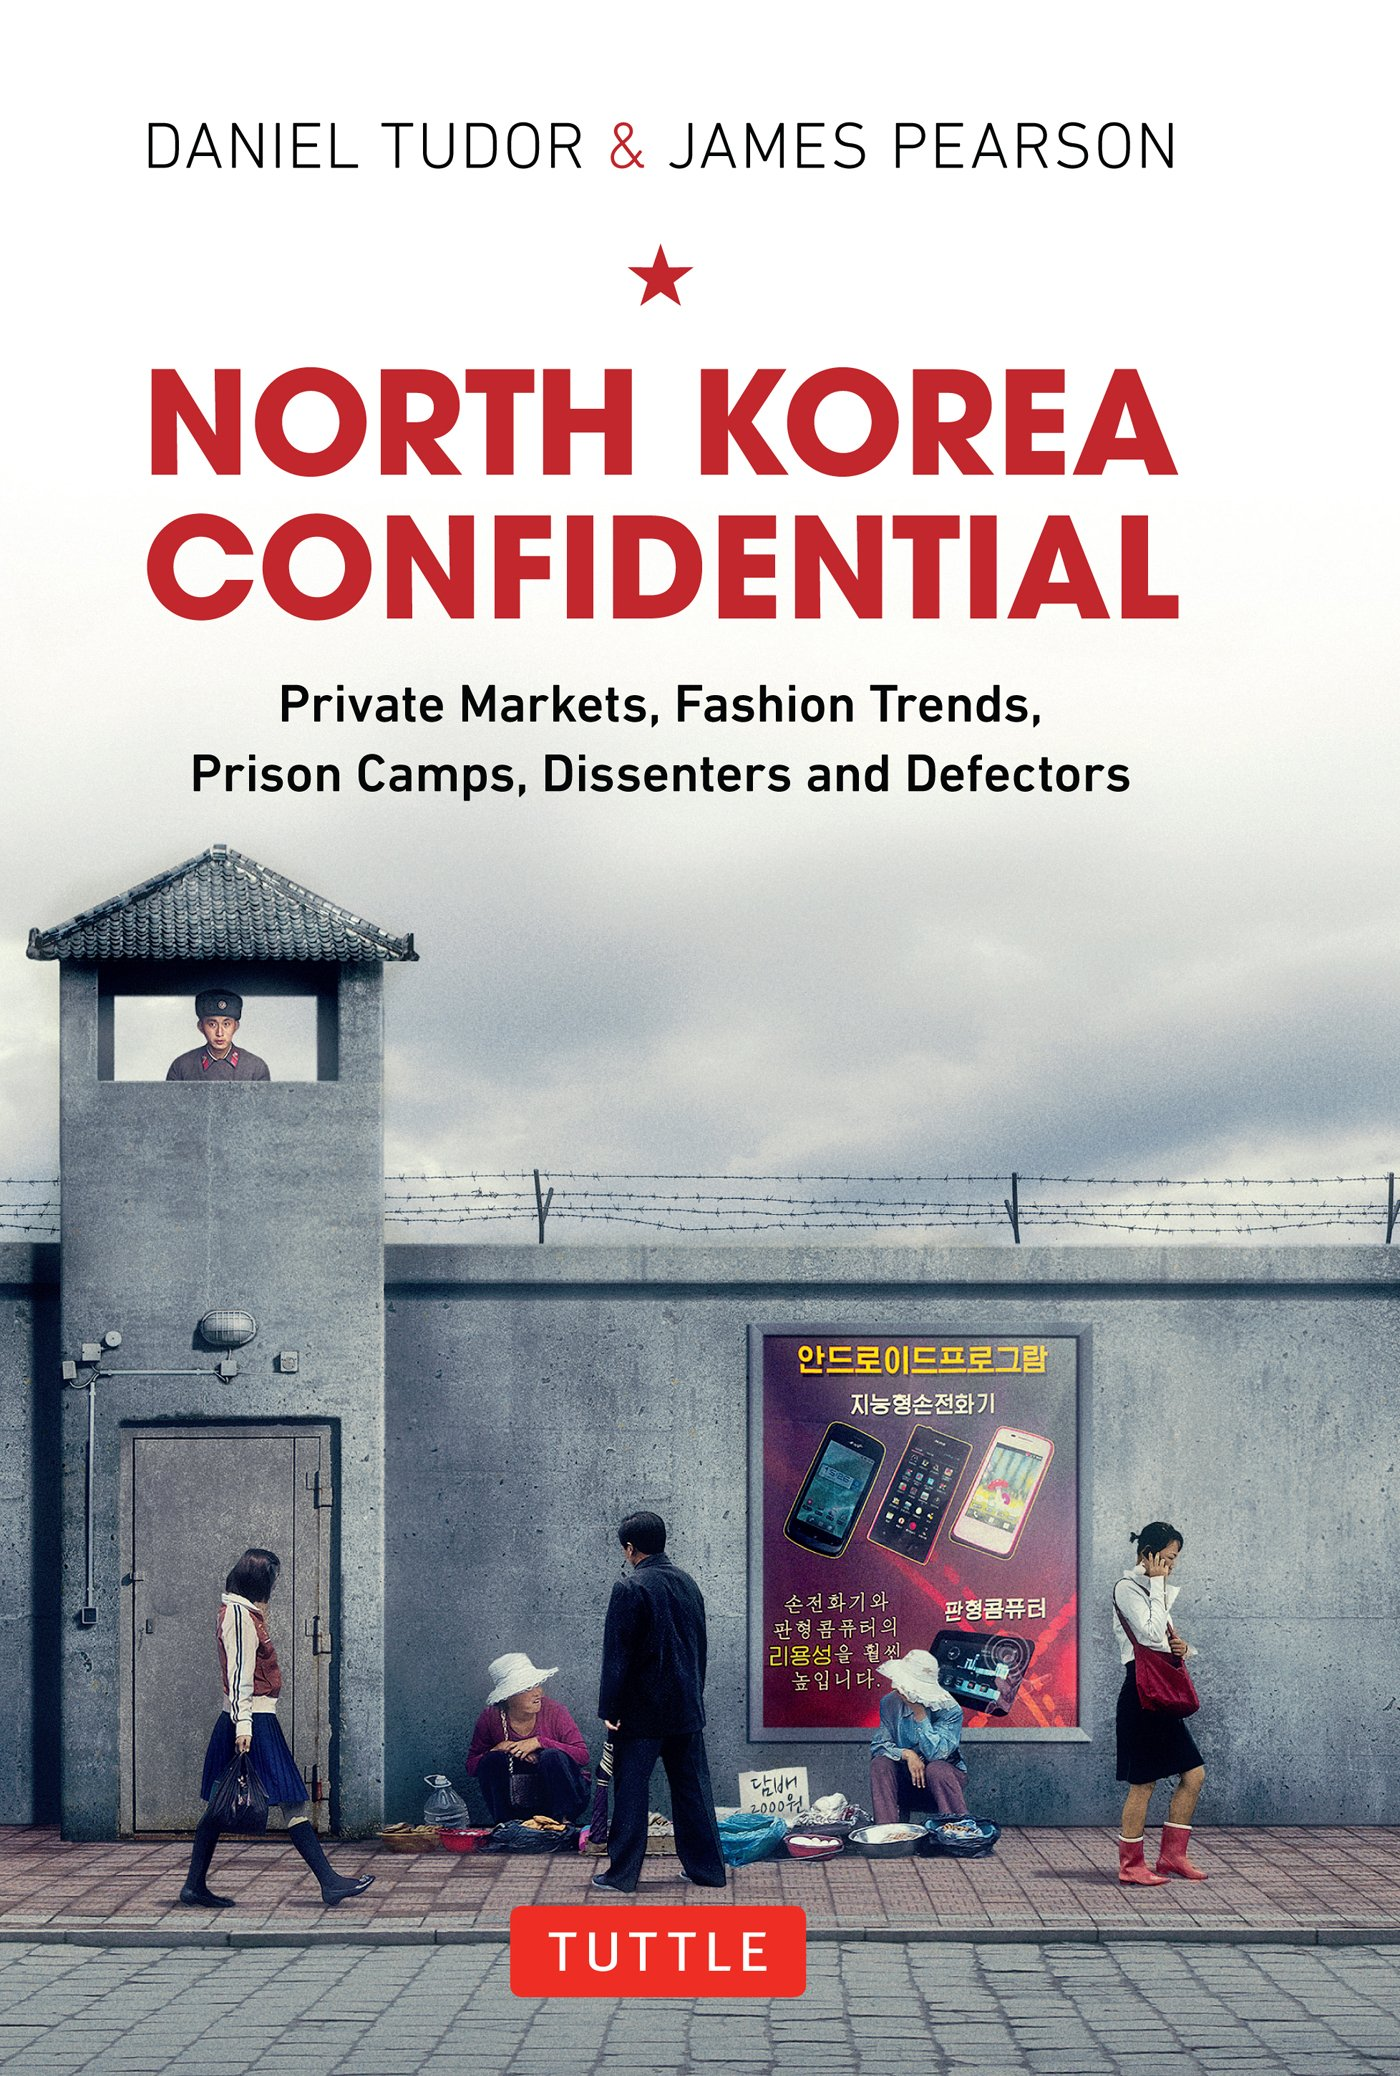 Image OfNorth Korea Confidential: Private Markets, Fashion Trends, Prison Camps, Dissenters And Defectors